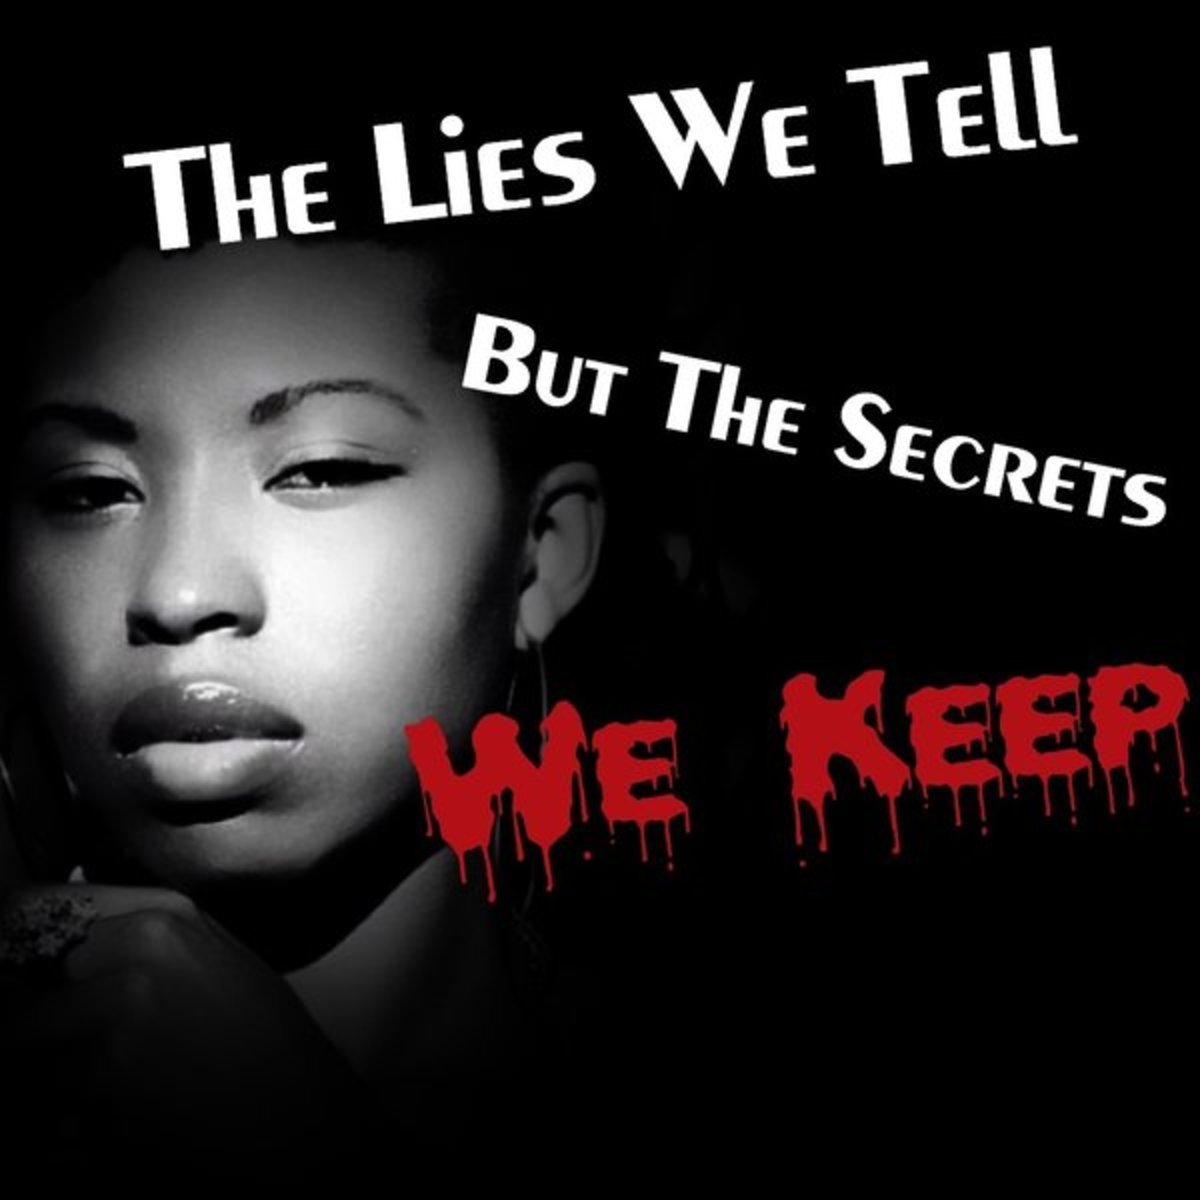 the-lies-we-tell-but-the-secrets-we-keep-part-5